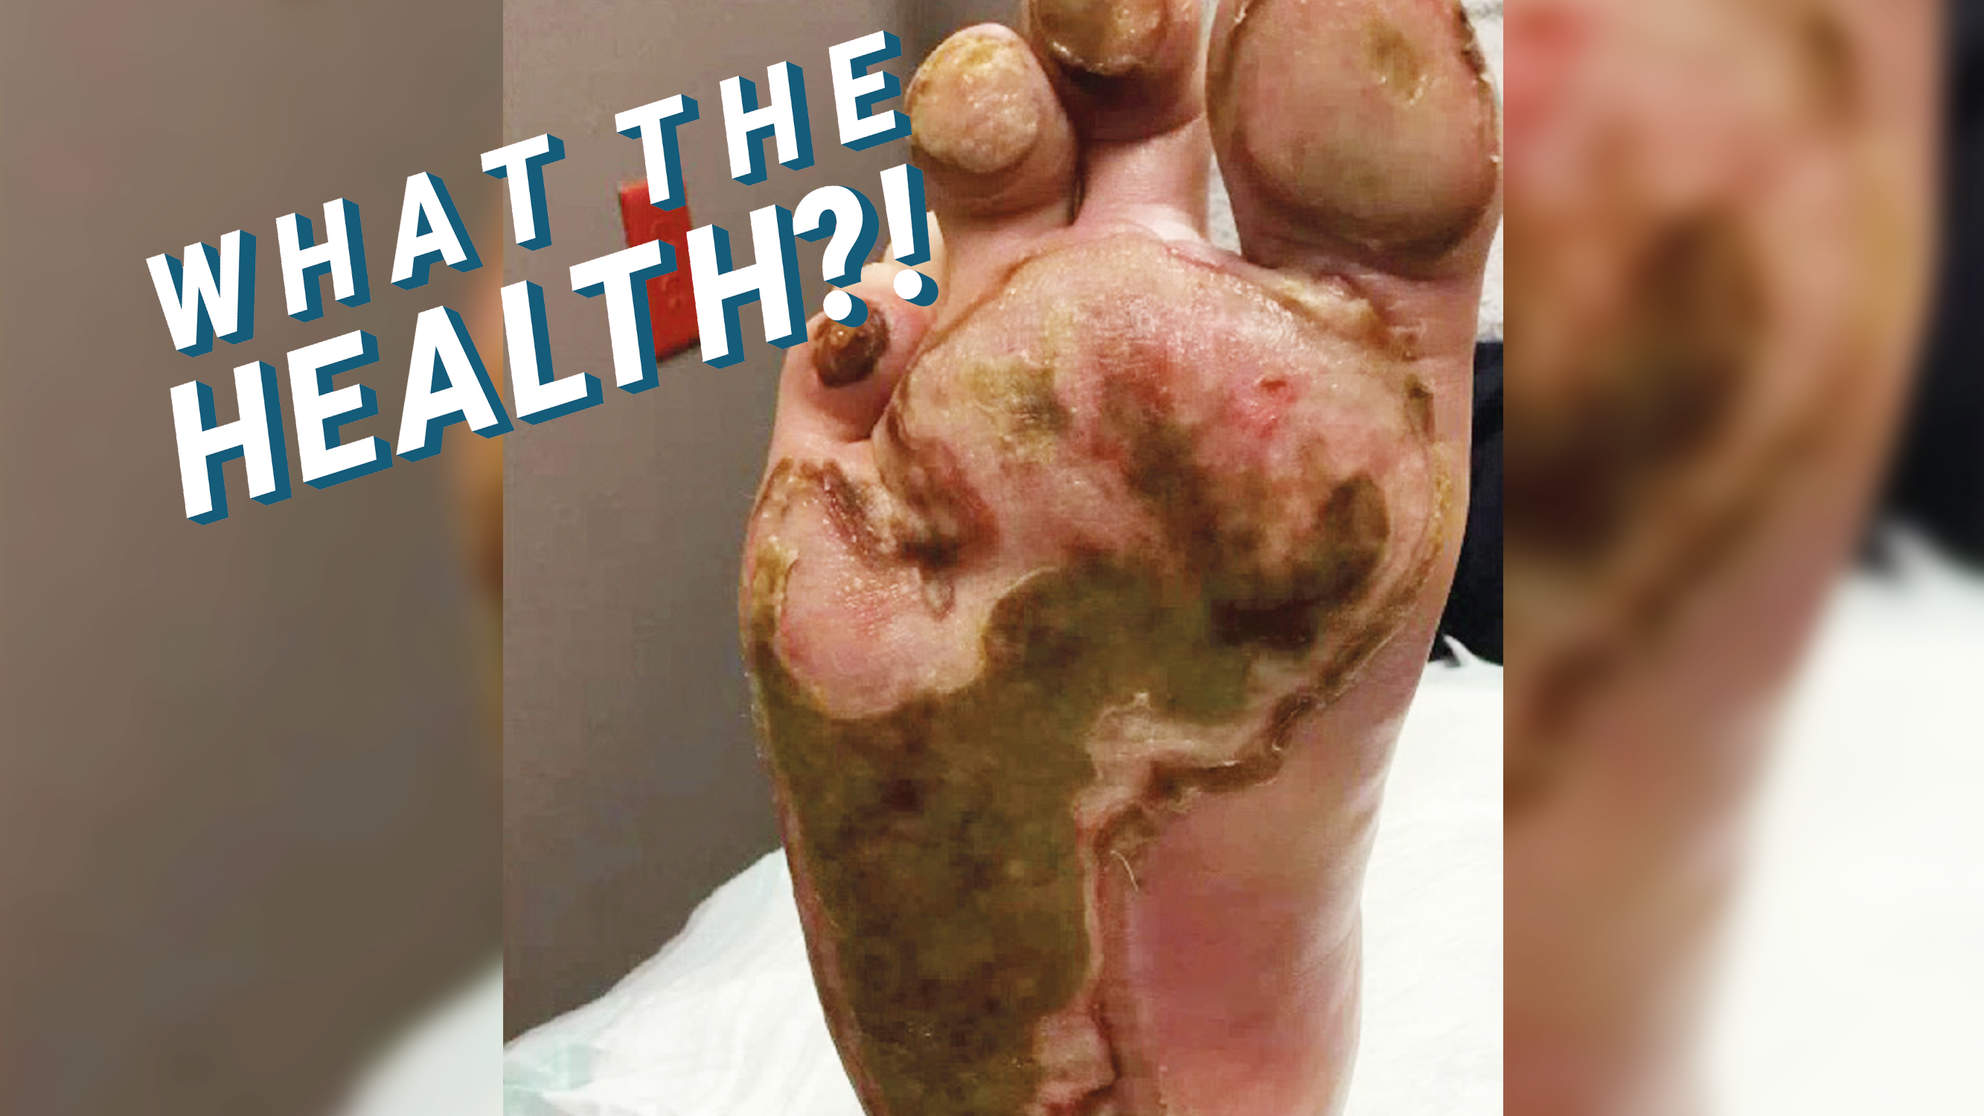 People Are Burning Their Feet On Hot Pavement—Here's How To Keep Yourself Safe